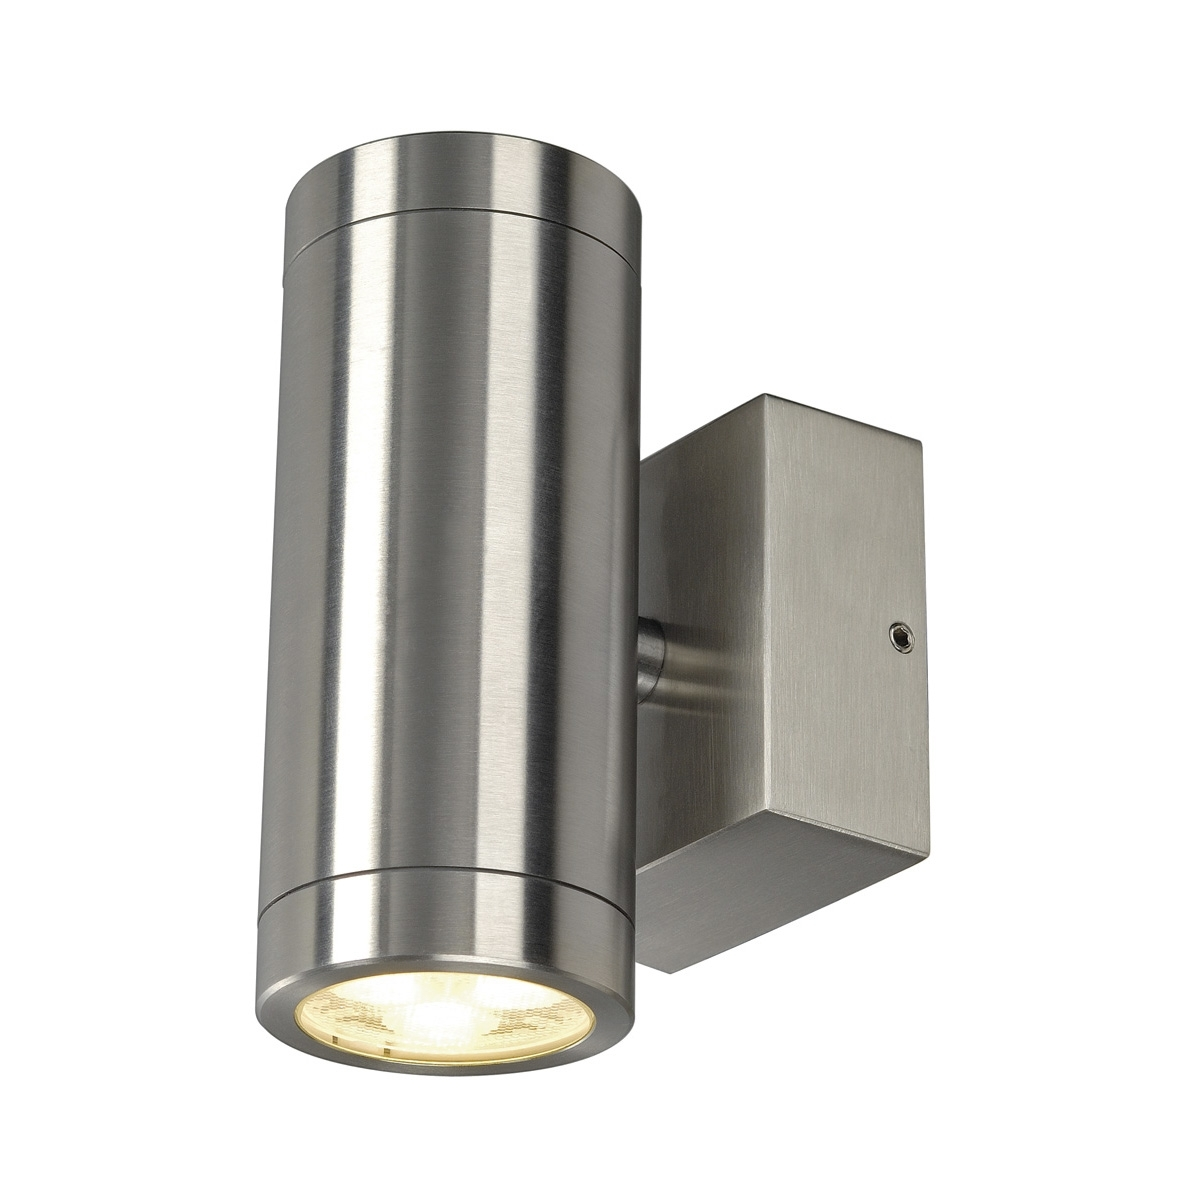 Well Known Stainless Steel Outdoor Ceiling Lights With Regard To Astina Steel, Outdoor Wall Light, Led, 3000K, Ip44, Round, Stainless (View 18 of 20)